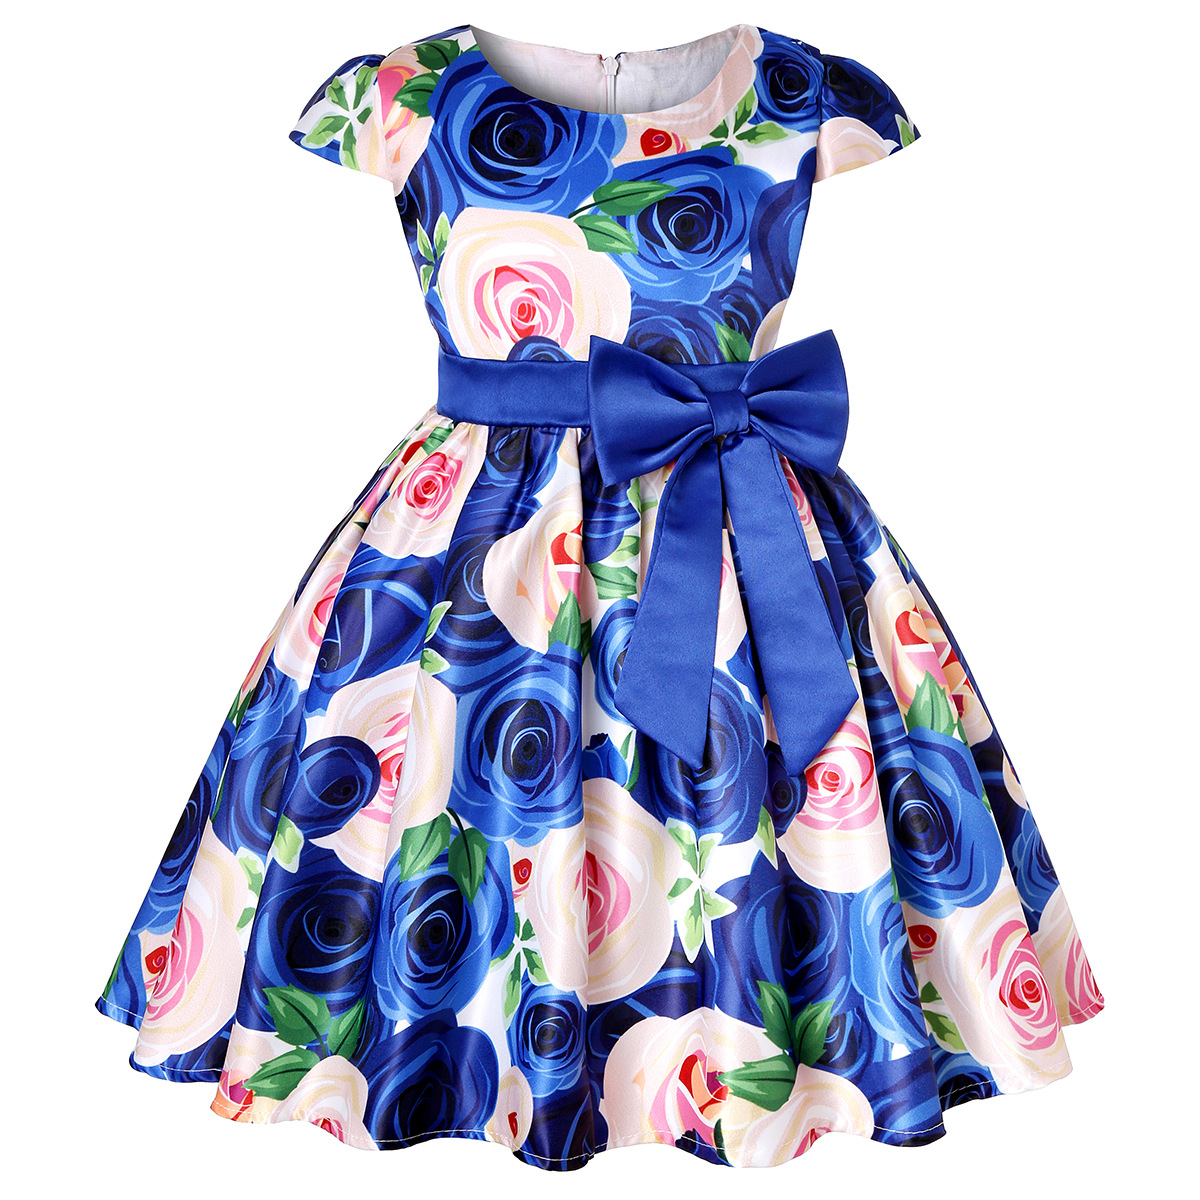 Baby Girls Dress Elegant Blooming Rose Flower Garden Cotton 2019 Christmas Halloween Princess Wedding Party Costume Kids Dresses